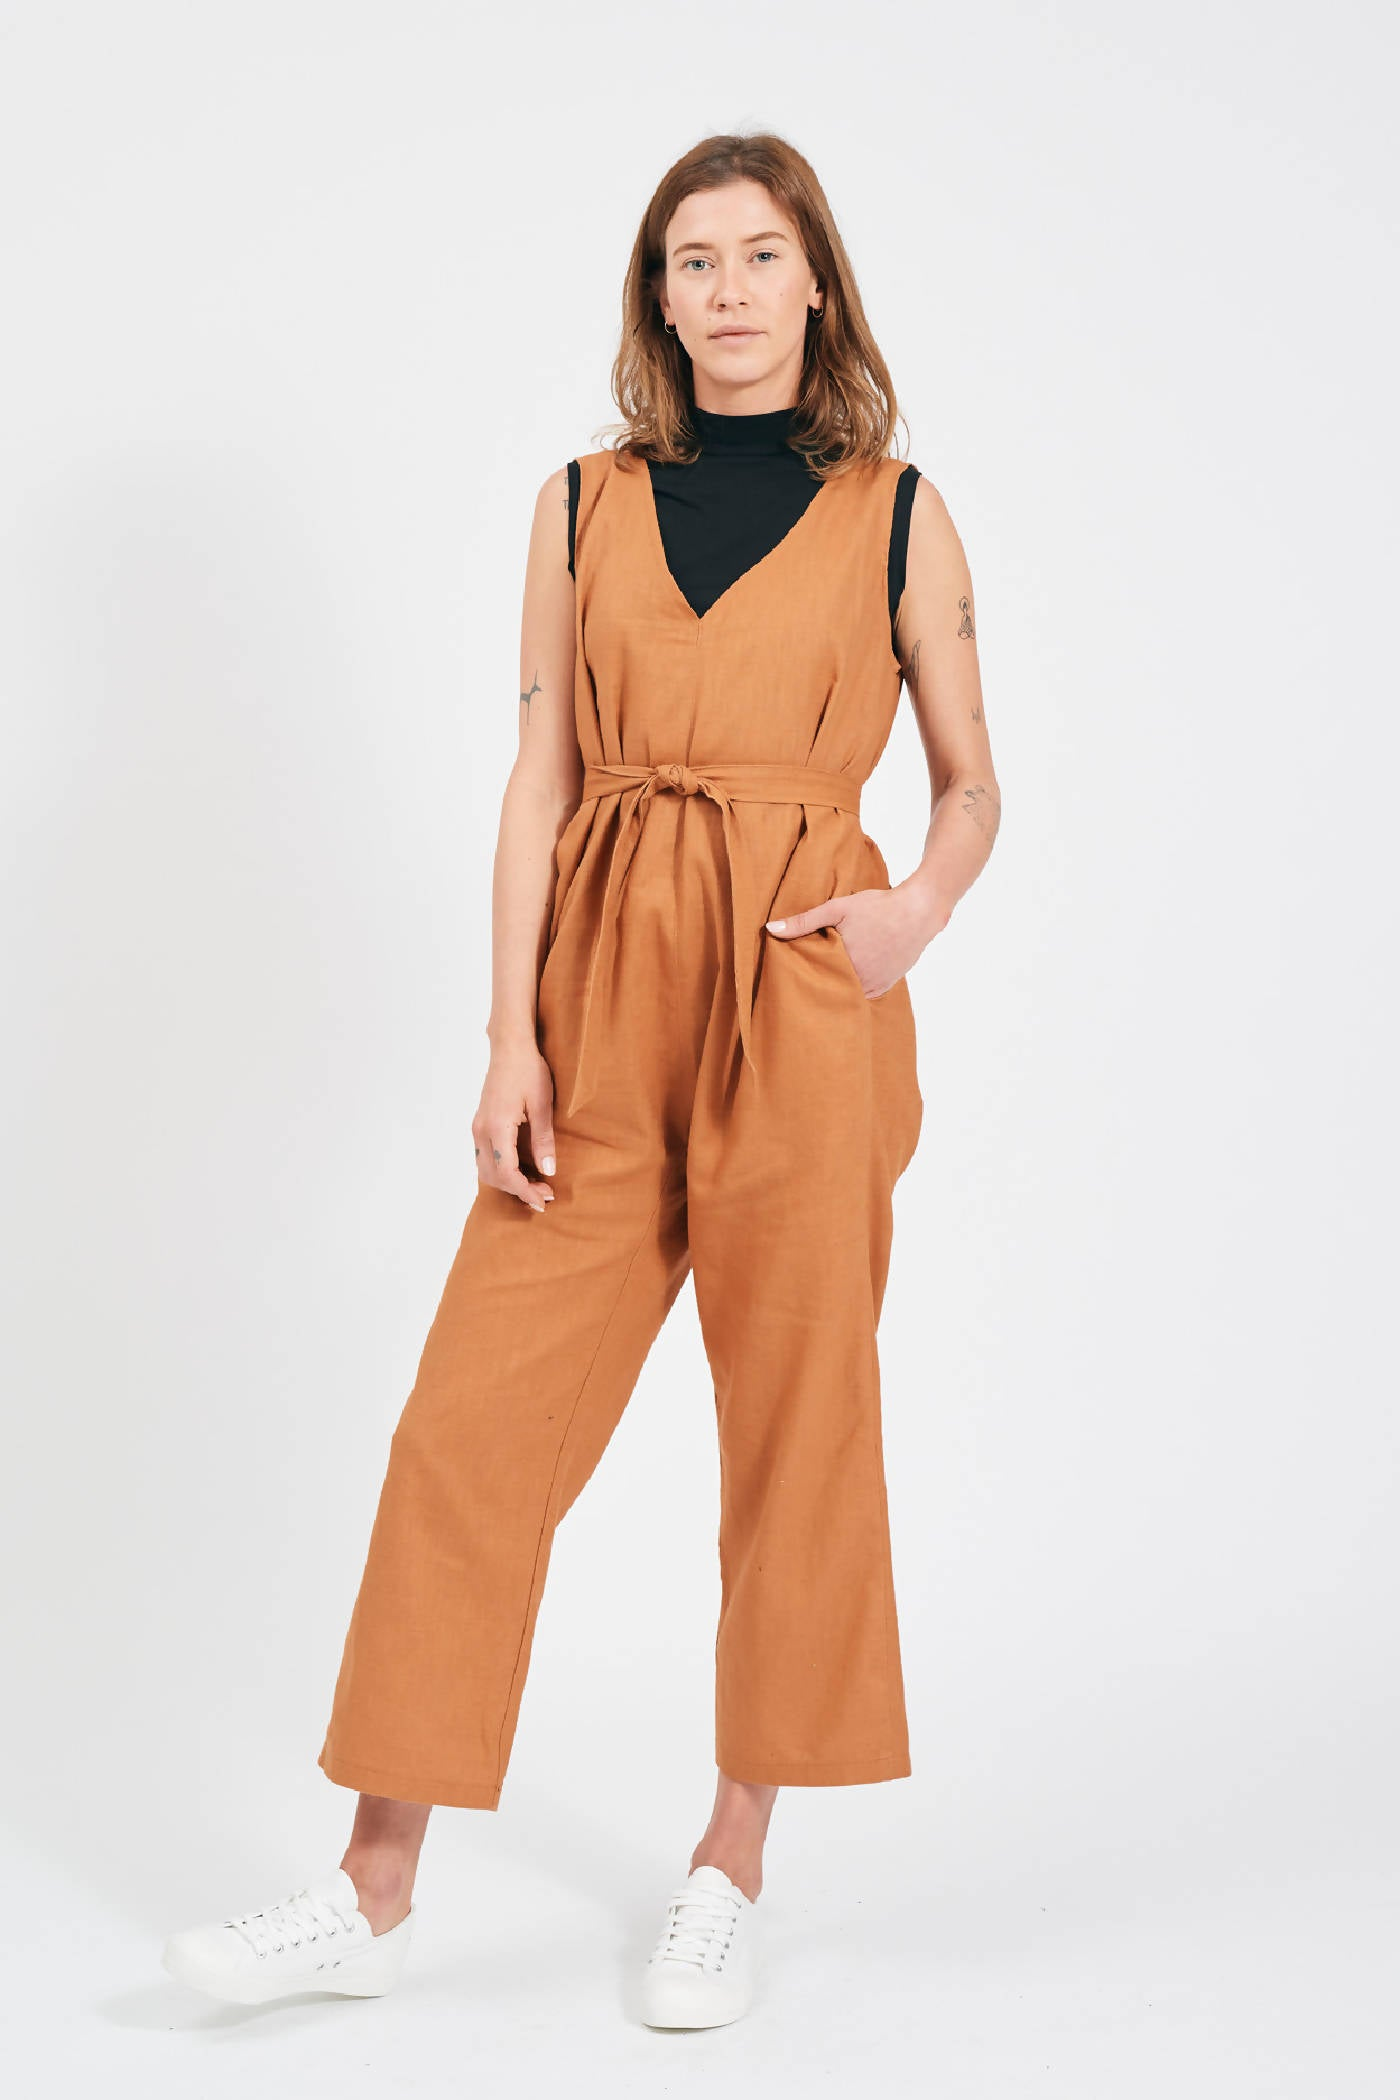 SWITCH TOP - OCHRE